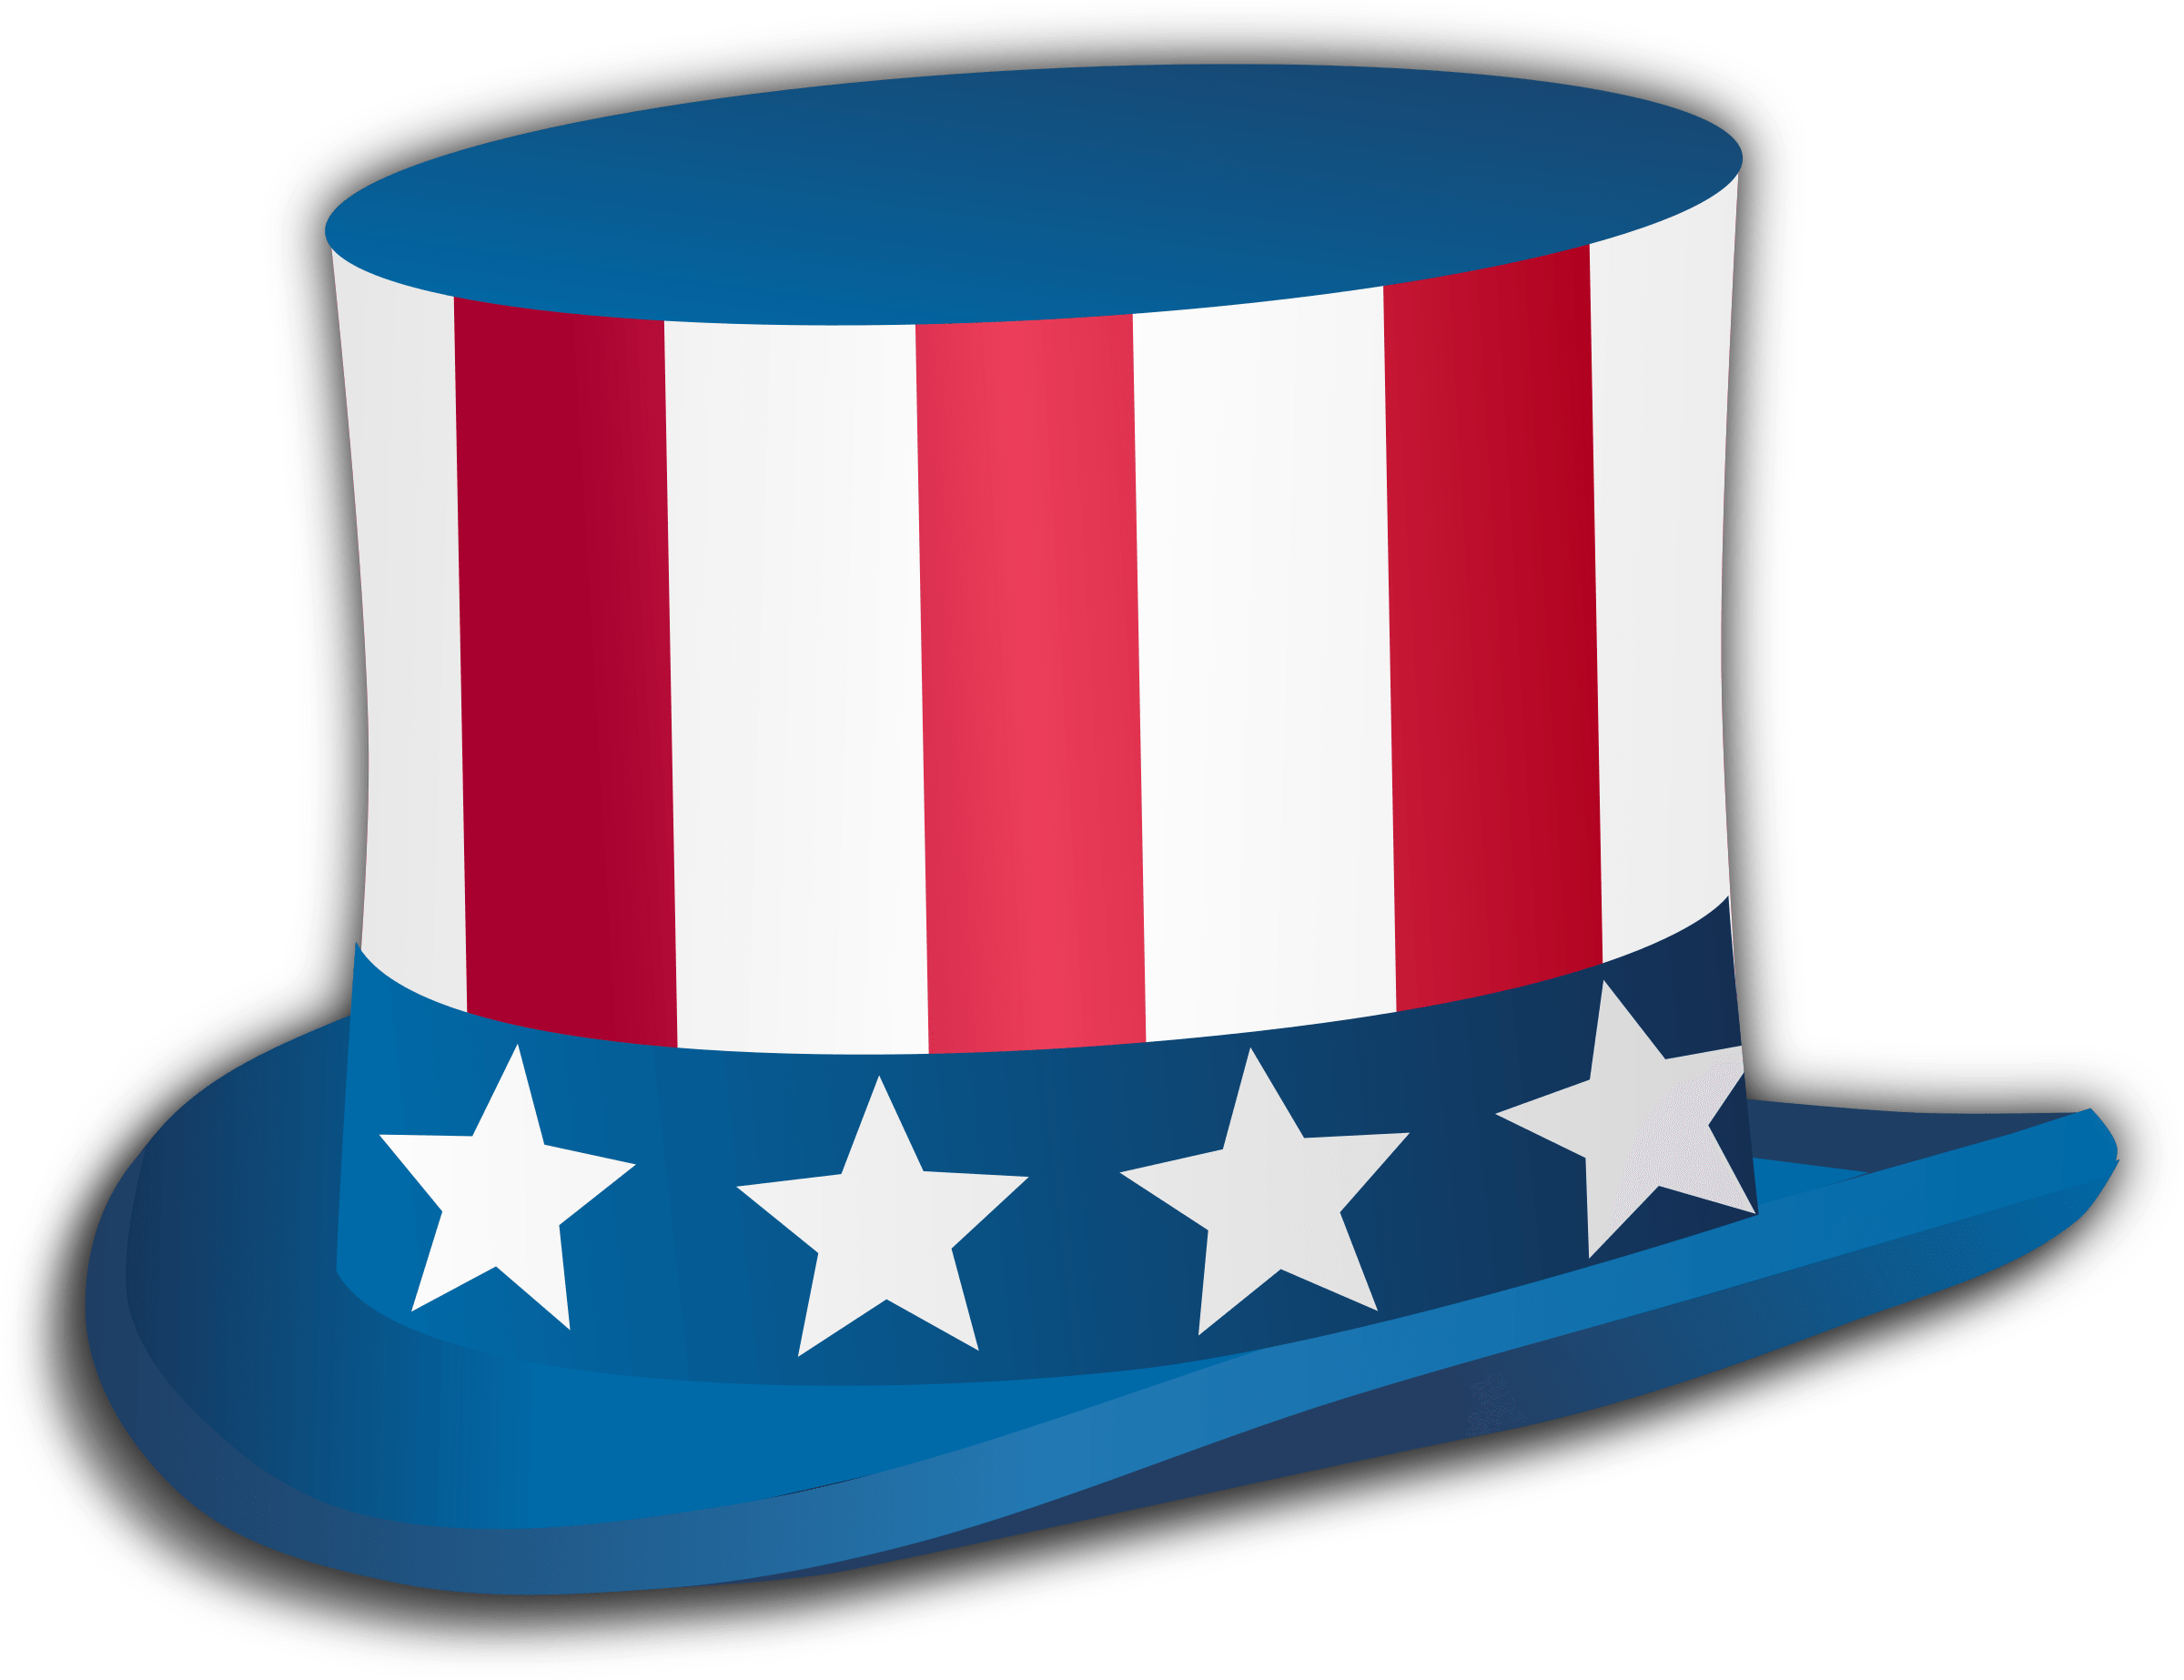 Happy of top hat. Clipart rocket fourth july